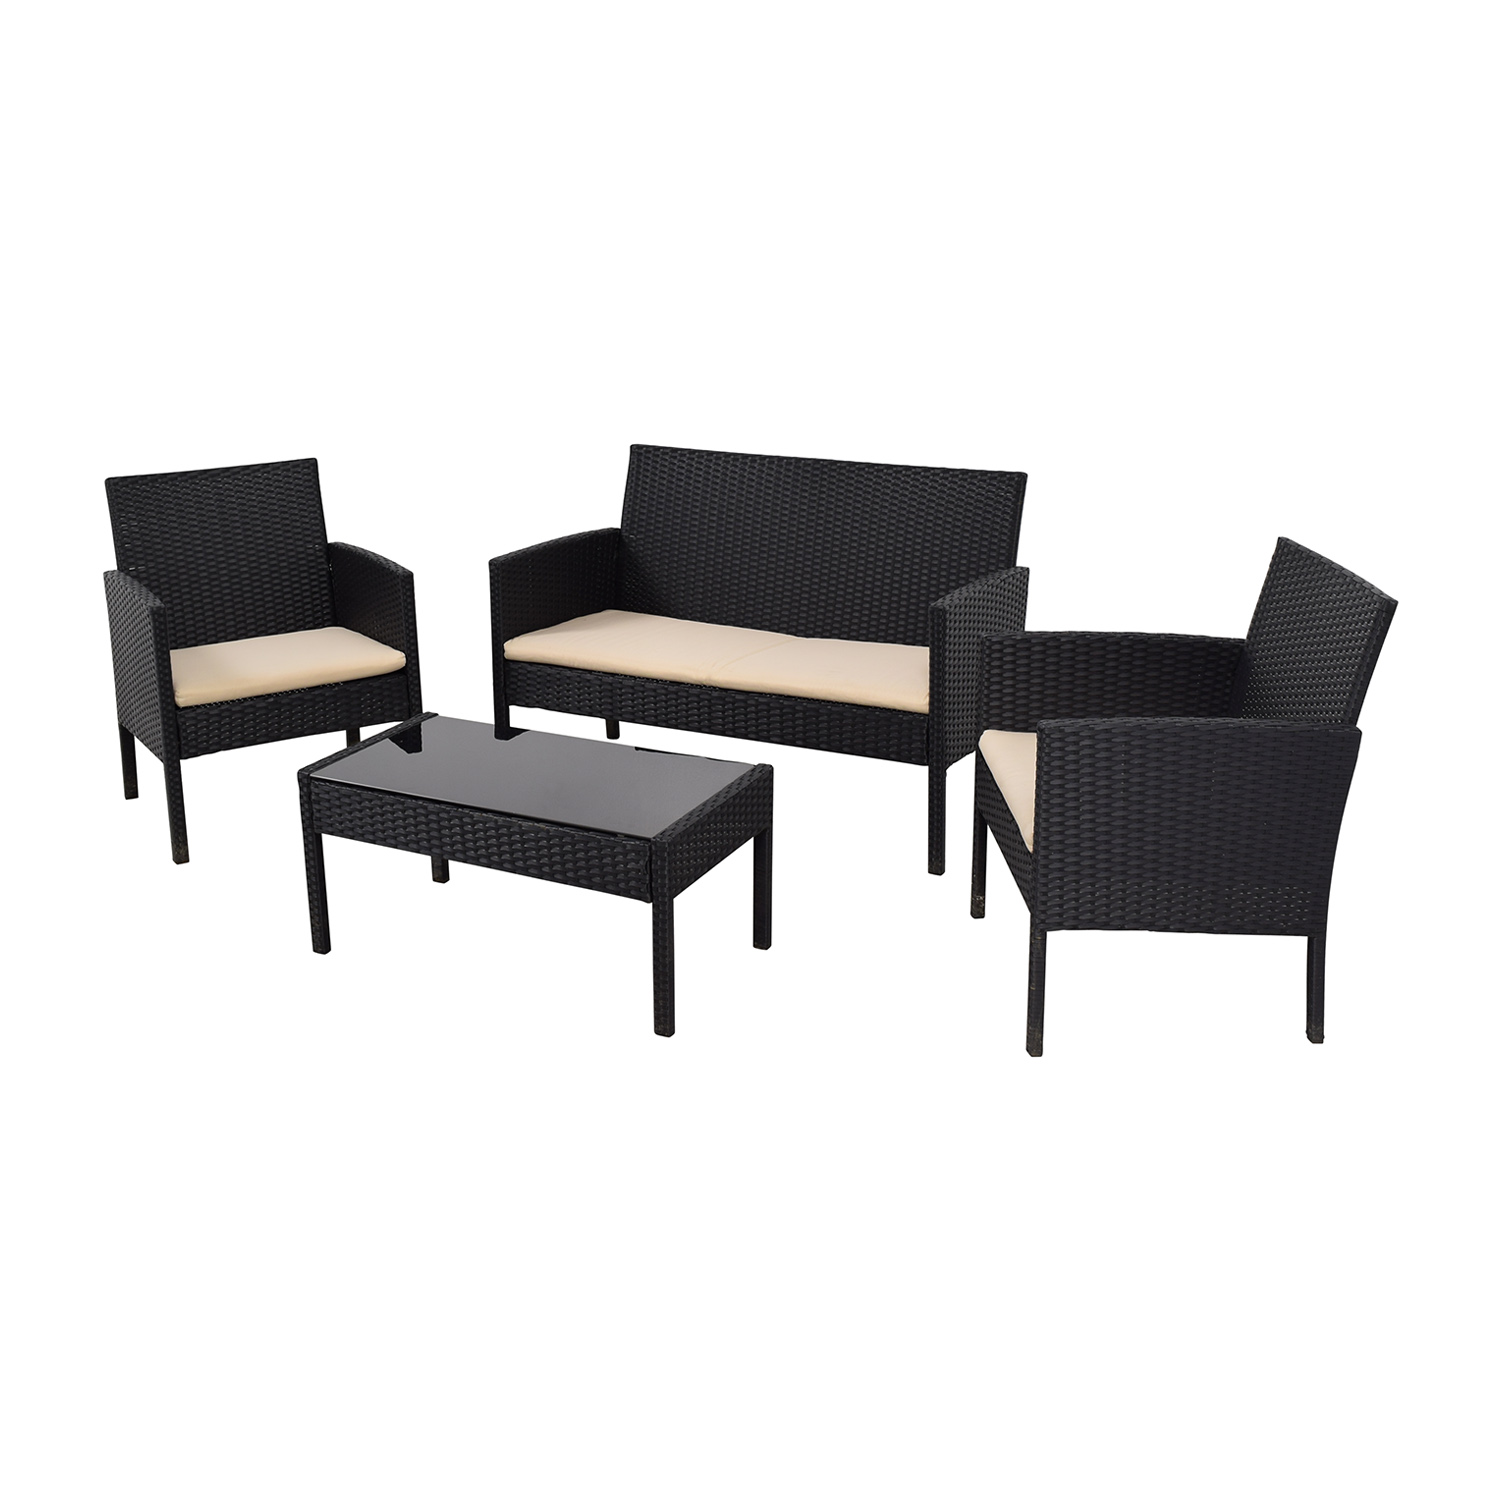 Radeway Radeway Black Outdoor Garden Patio Furniture discount